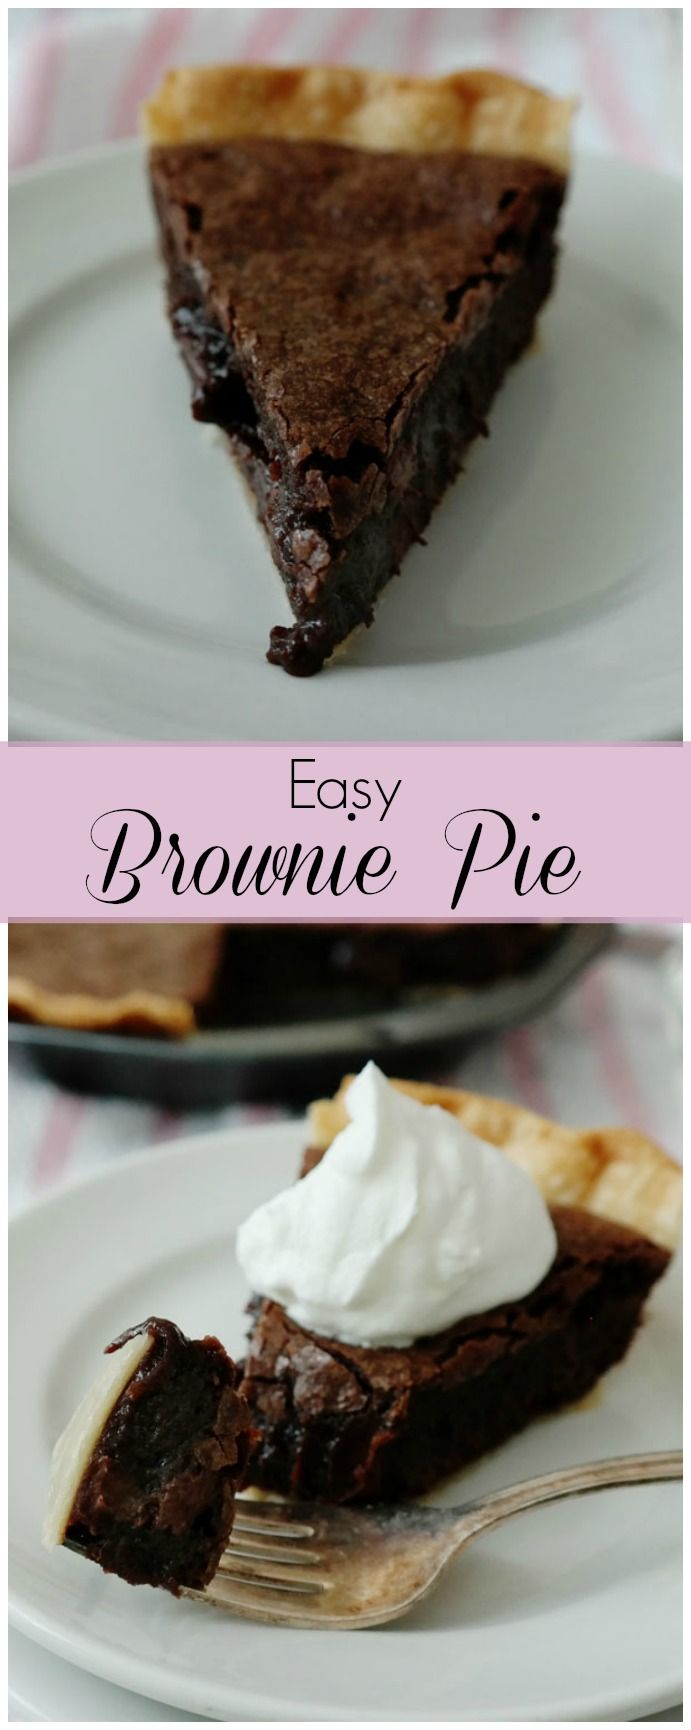 Easy Brownie Pie-taking brownies to the next level and creating an easy dessert-a flaky pie crust surrounds a rich brownie with a